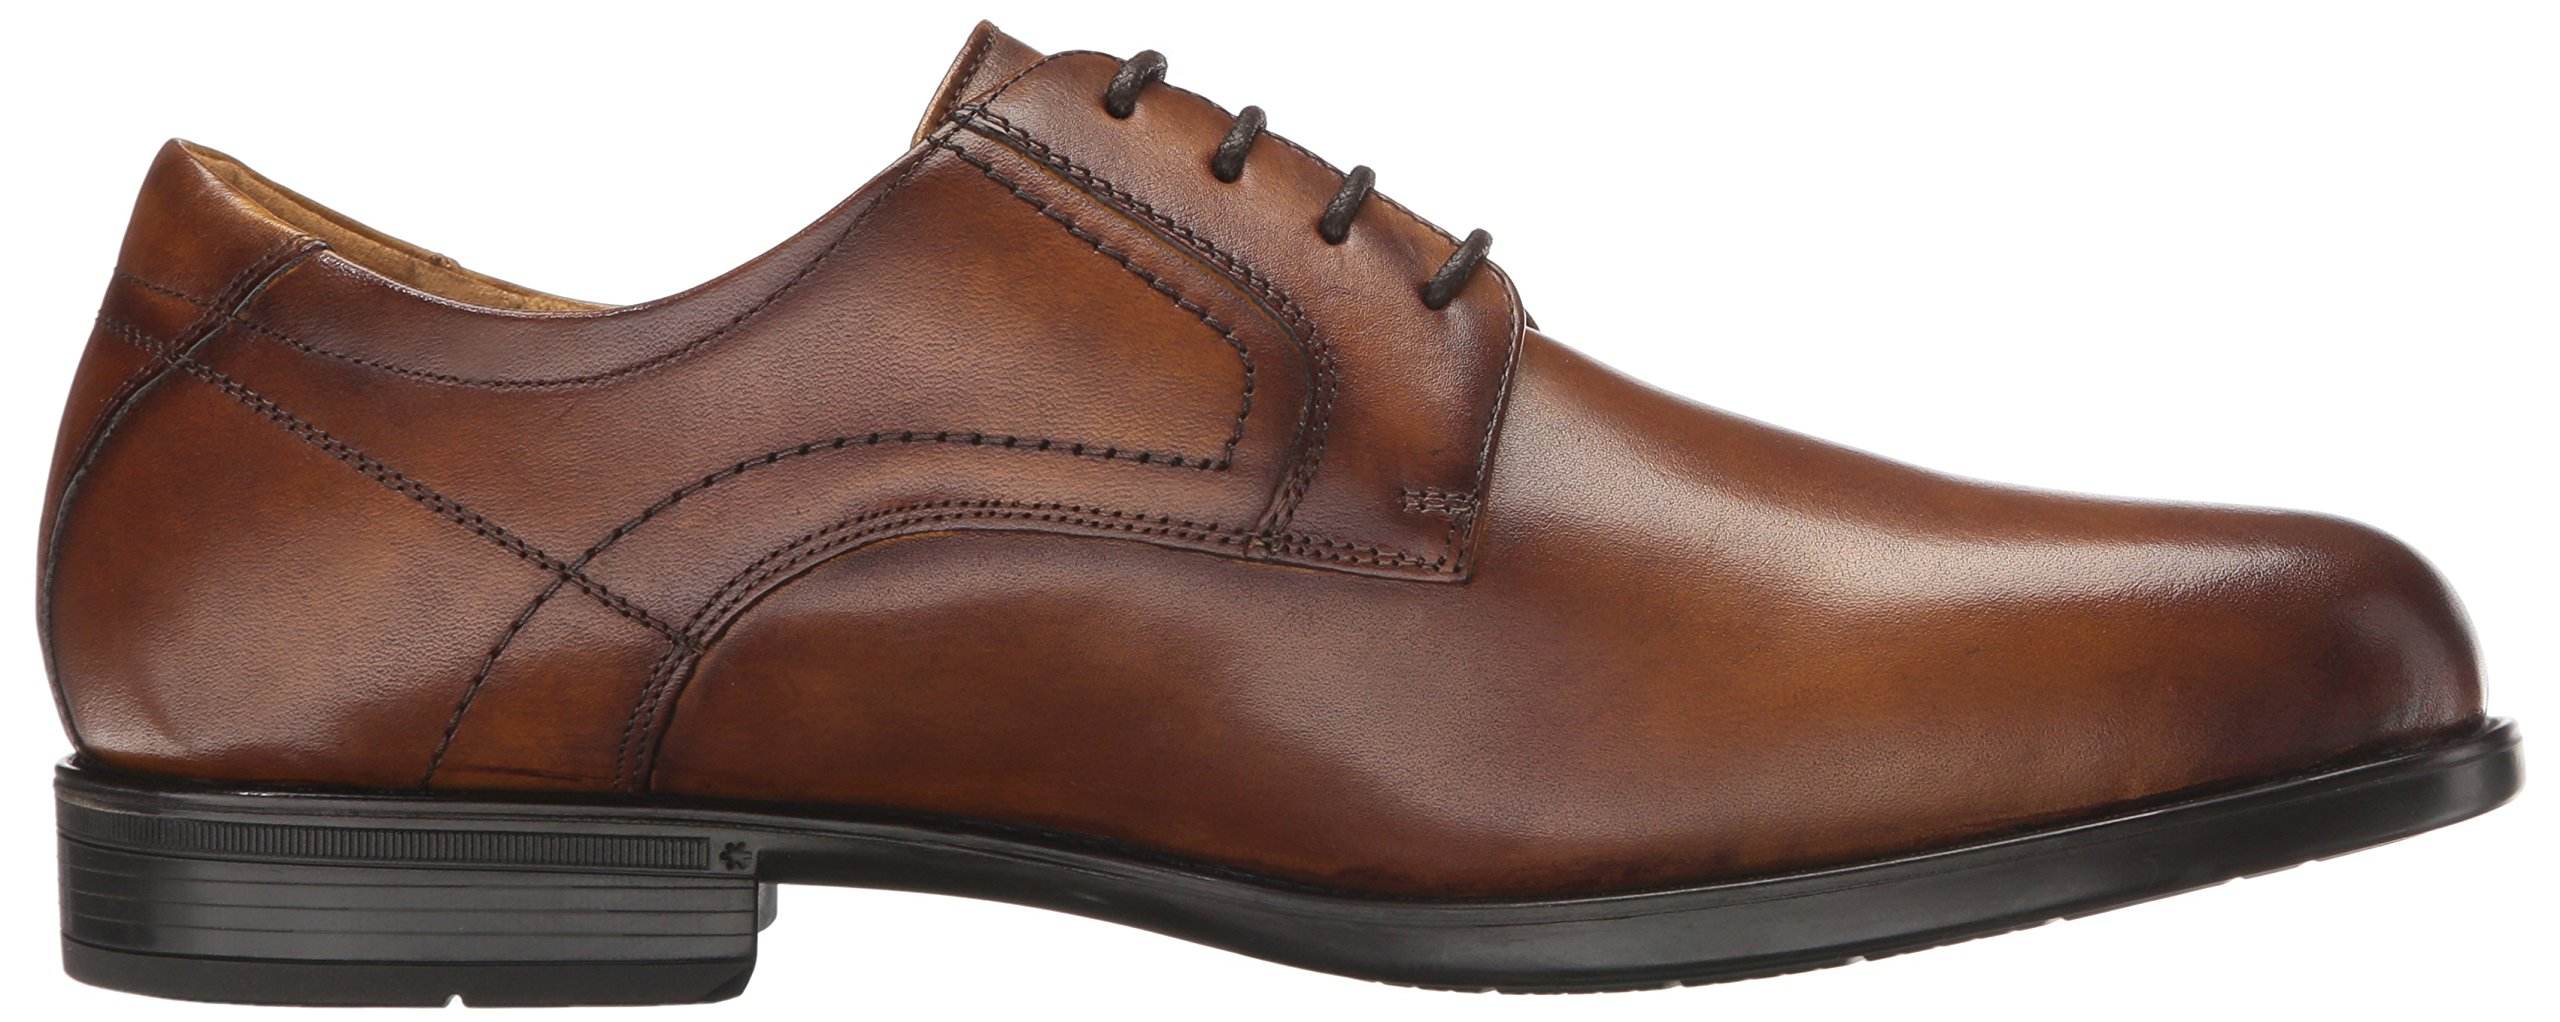 Florsheim Men's Medfield Plain Toe Oxford Dress Shoe, Cognac, 8 D US by Florsheim (Image #7)